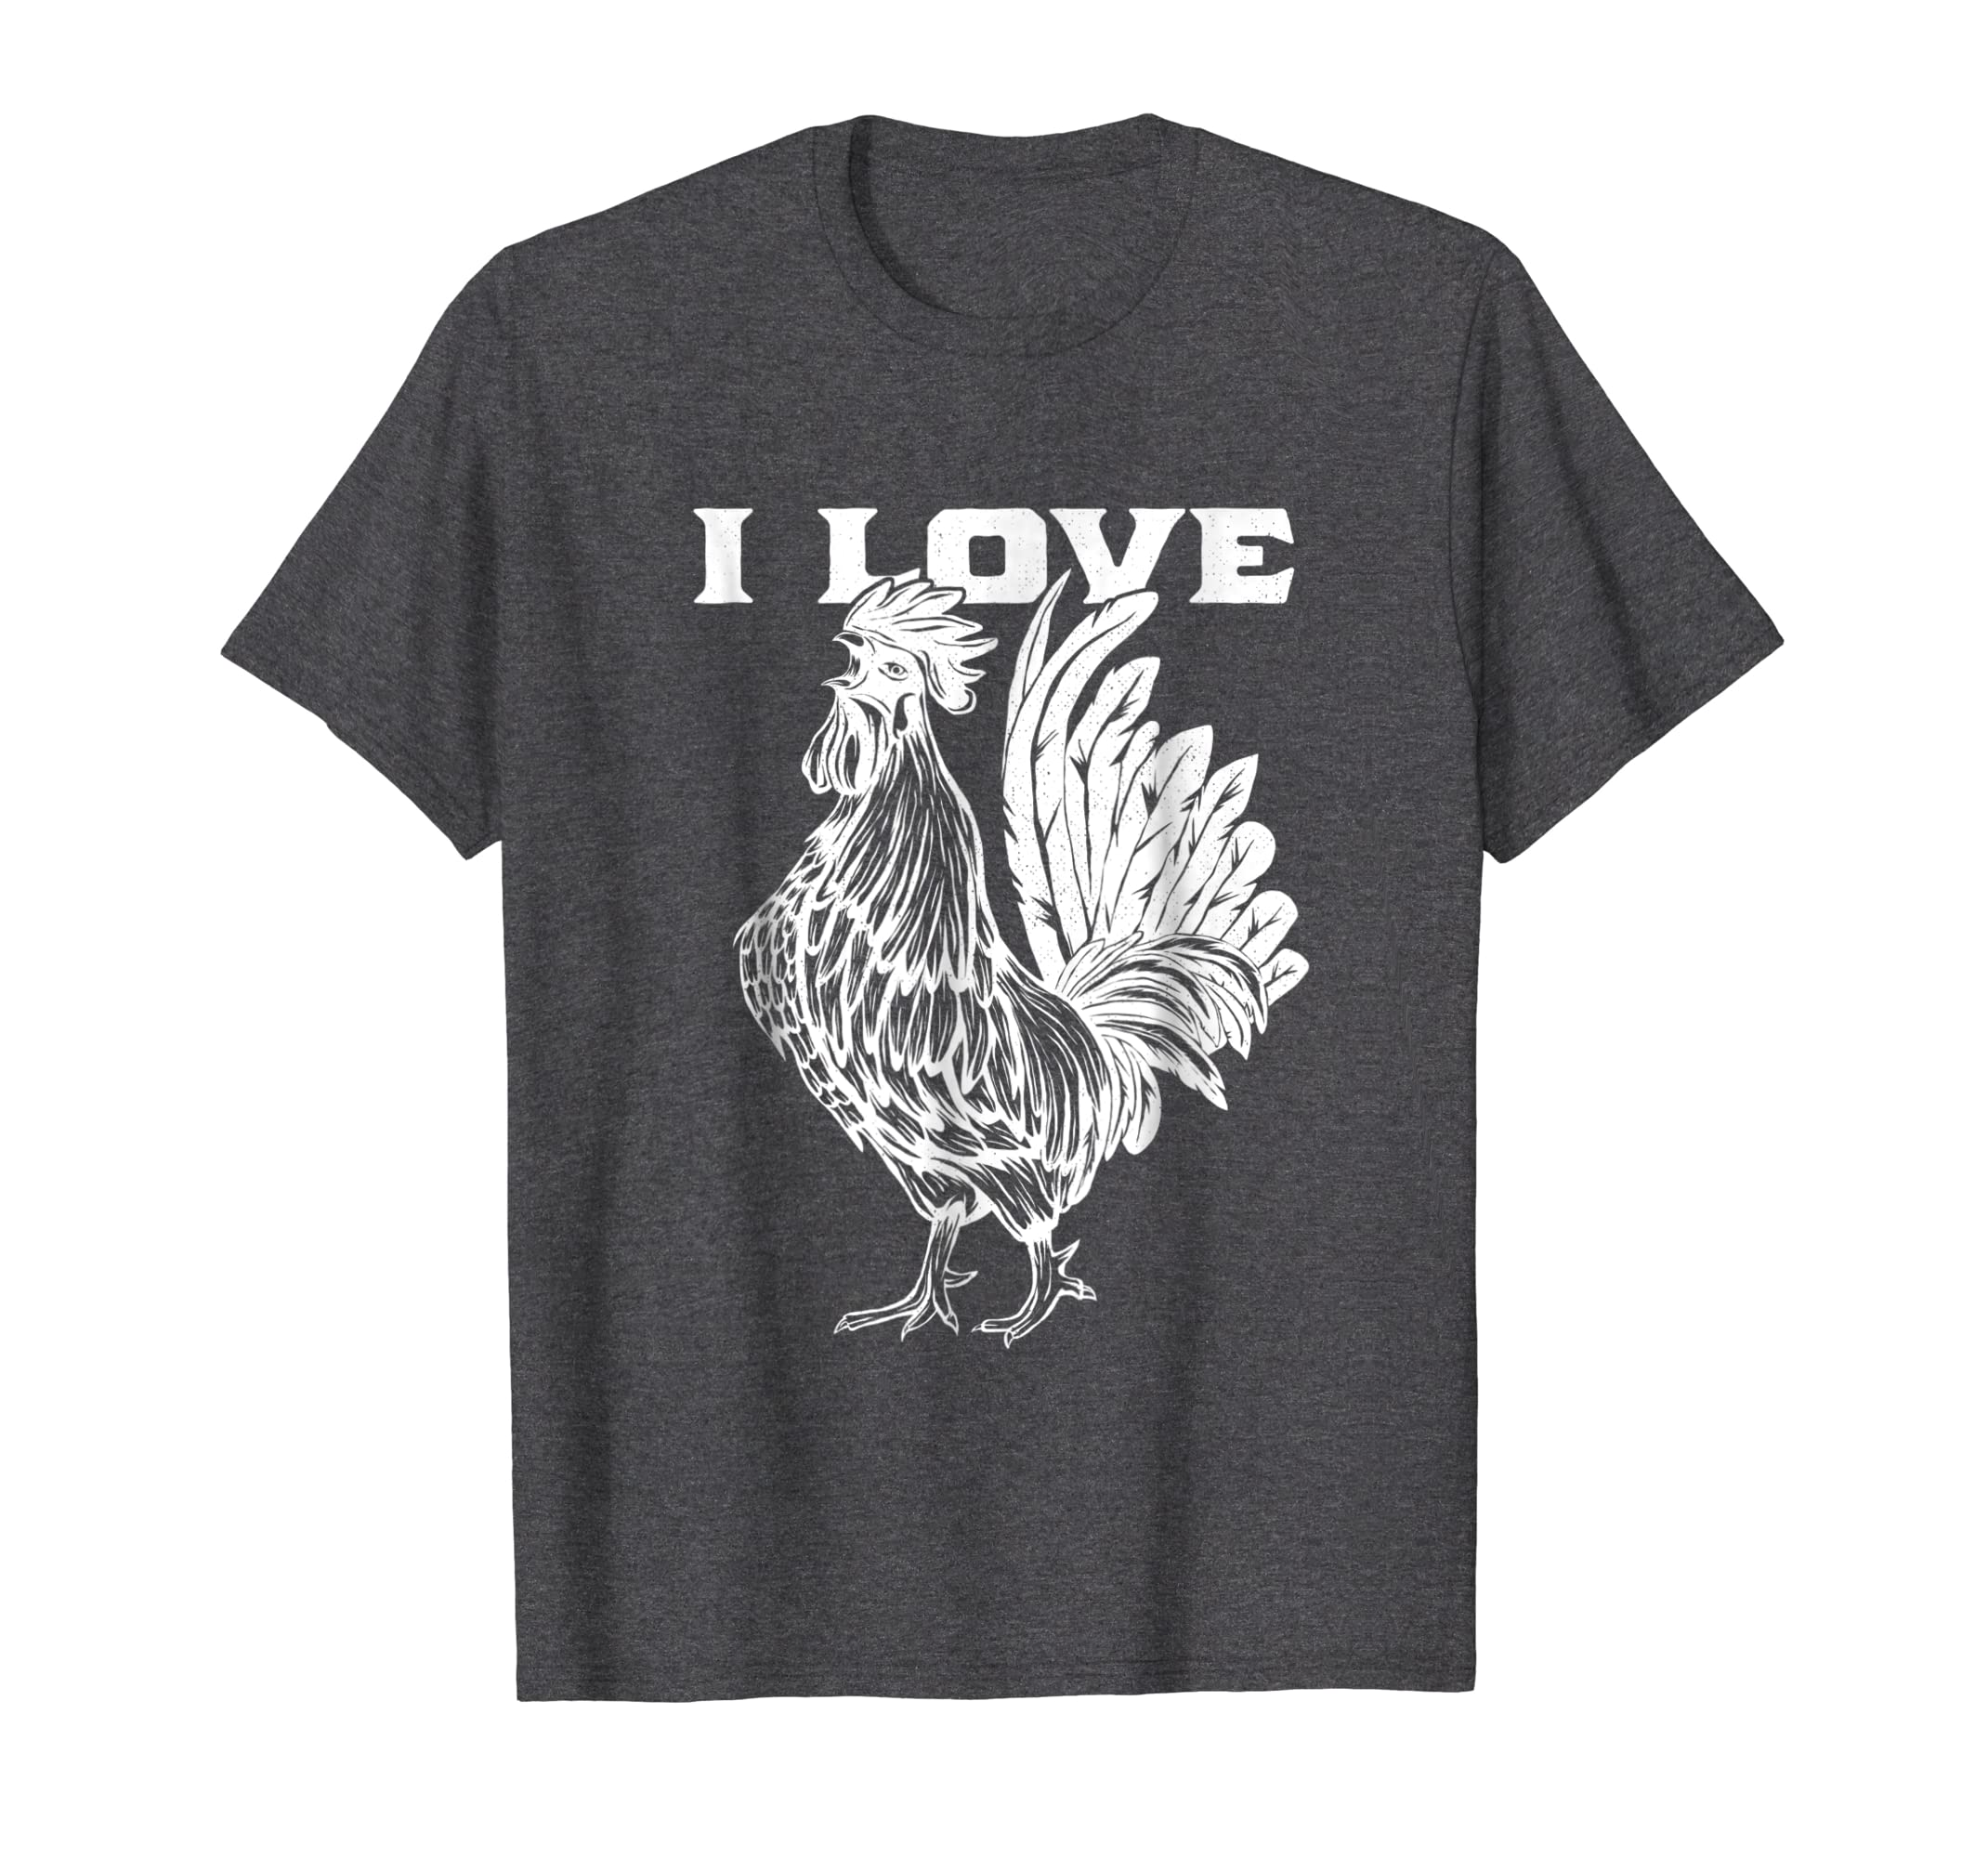 14c03ae24 Amazon.com: Funny I Love Cock T-Shirt Rooster Lover I Love Roosters:  Clothing